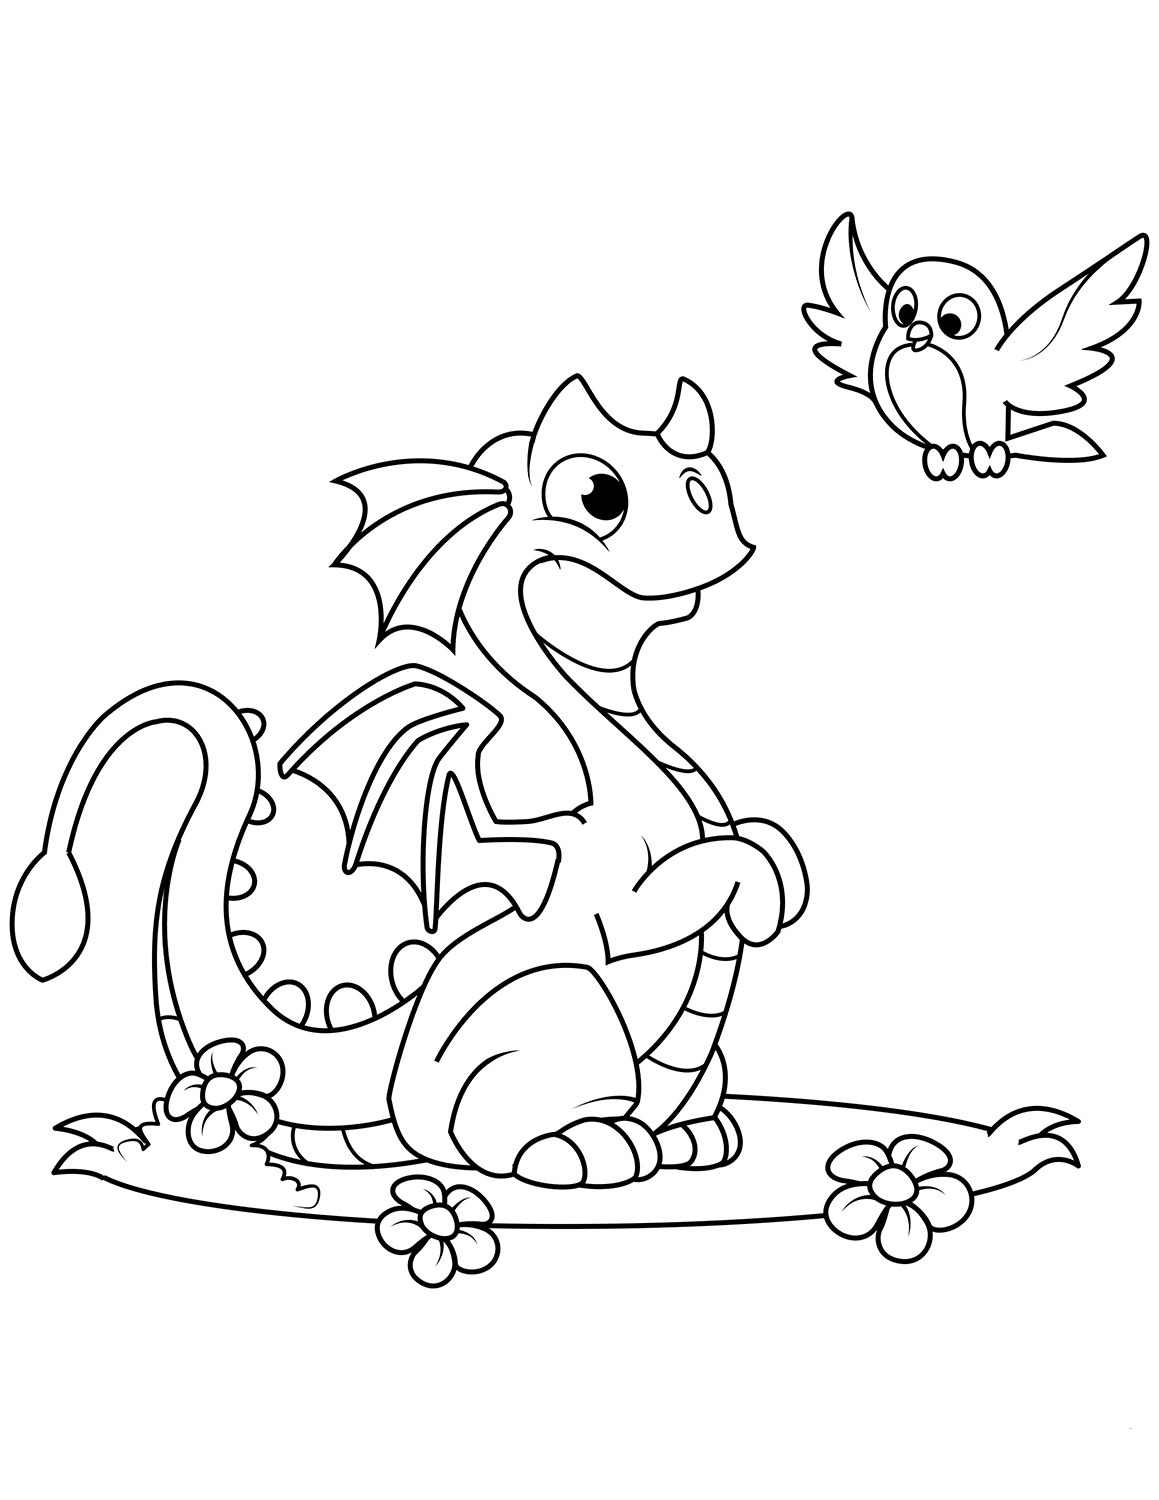 free coloring pages of dragons coloring pages dragon coloring pages free and printable of coloring free dragons pages